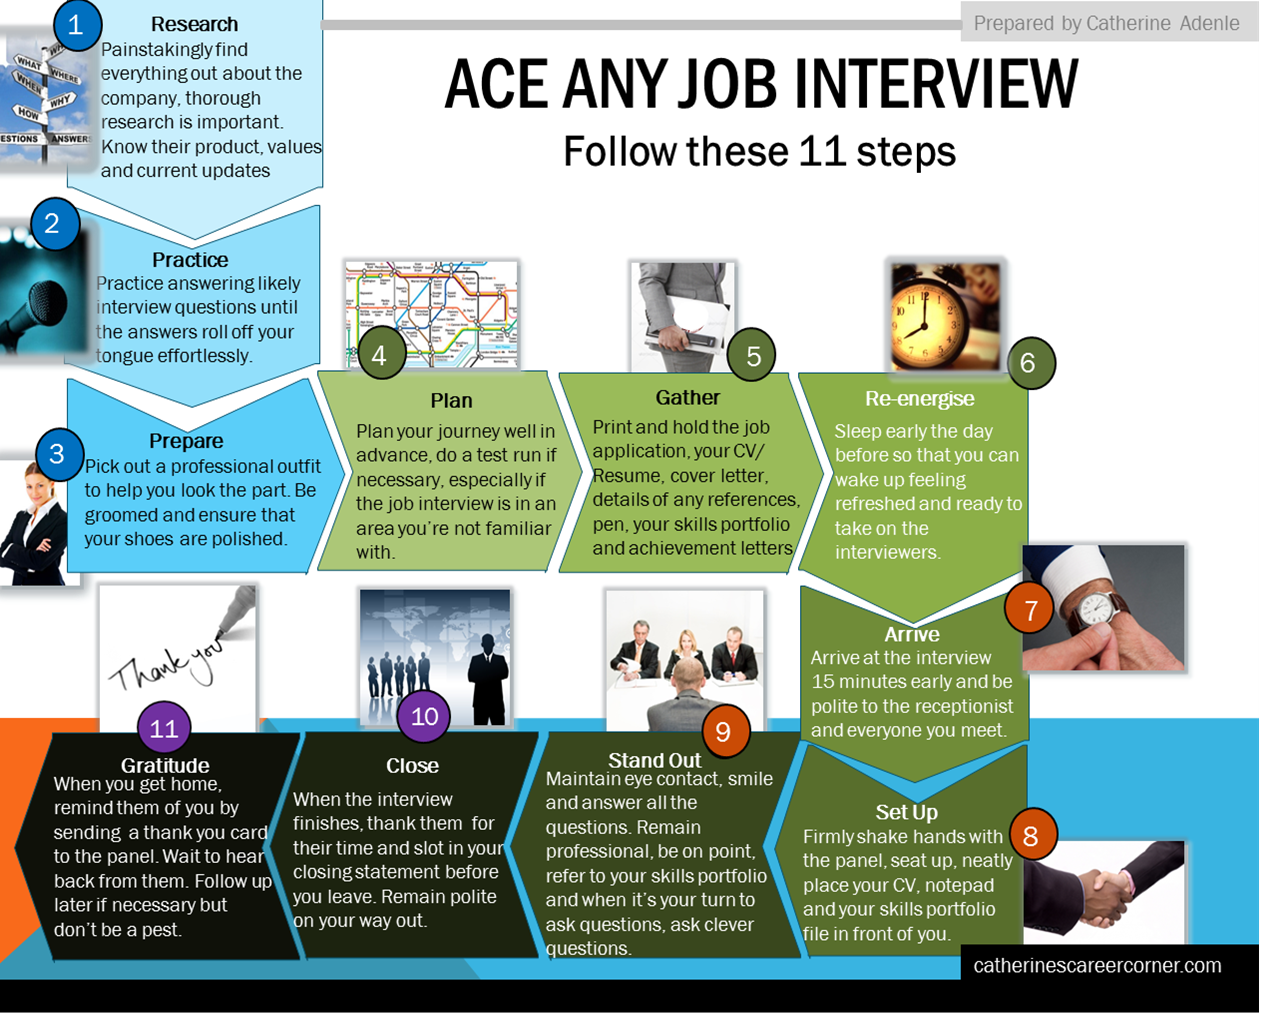 11 Steps to Ace Any Job Interview by Catherine Adenle